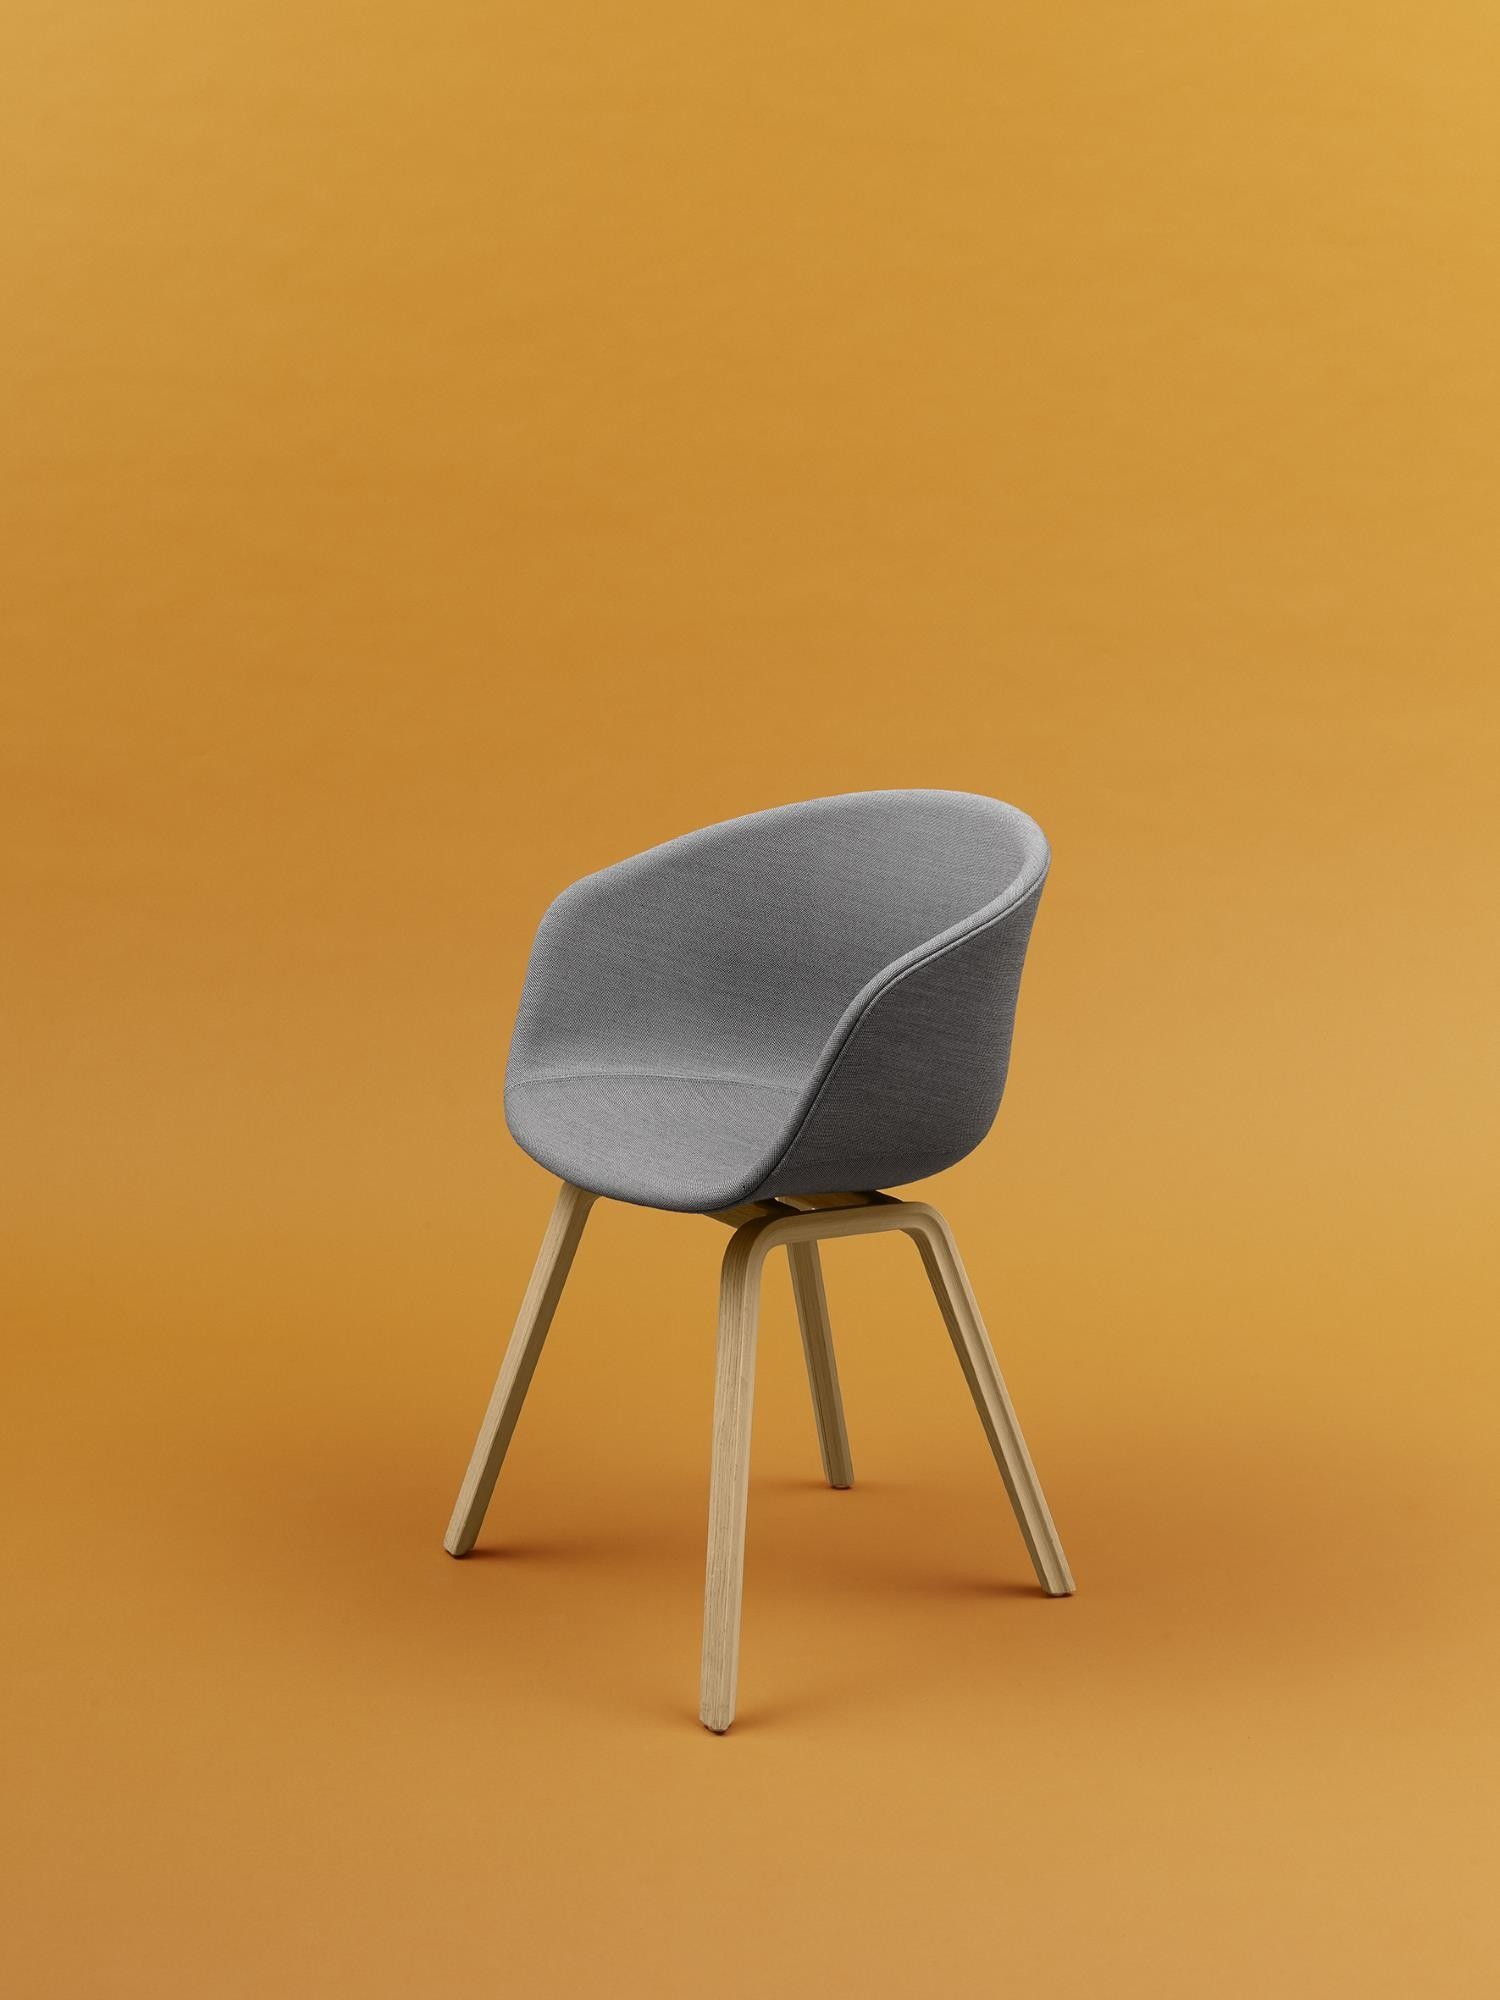 Einrichten Design De http einrichten design de de about a chair aac 23 hay html